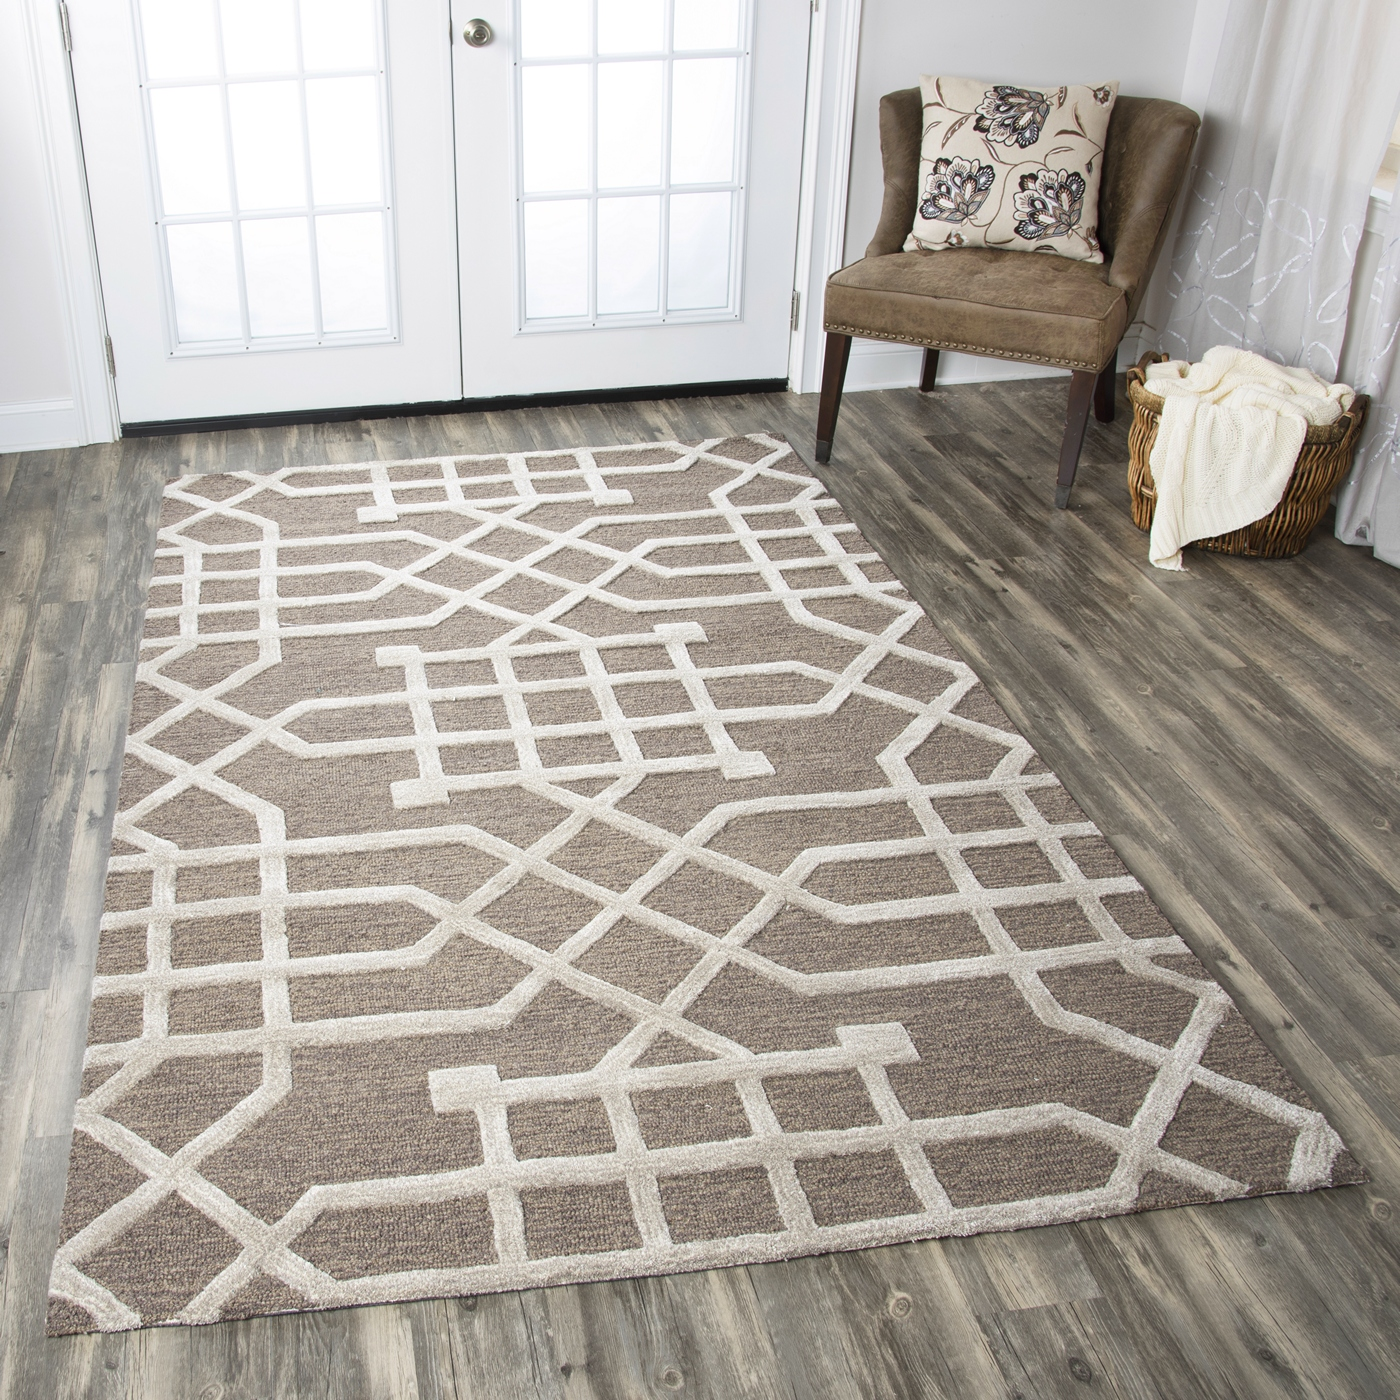 Caterine Trellis Line Pattern Wool Area Rug In Taupe Tan